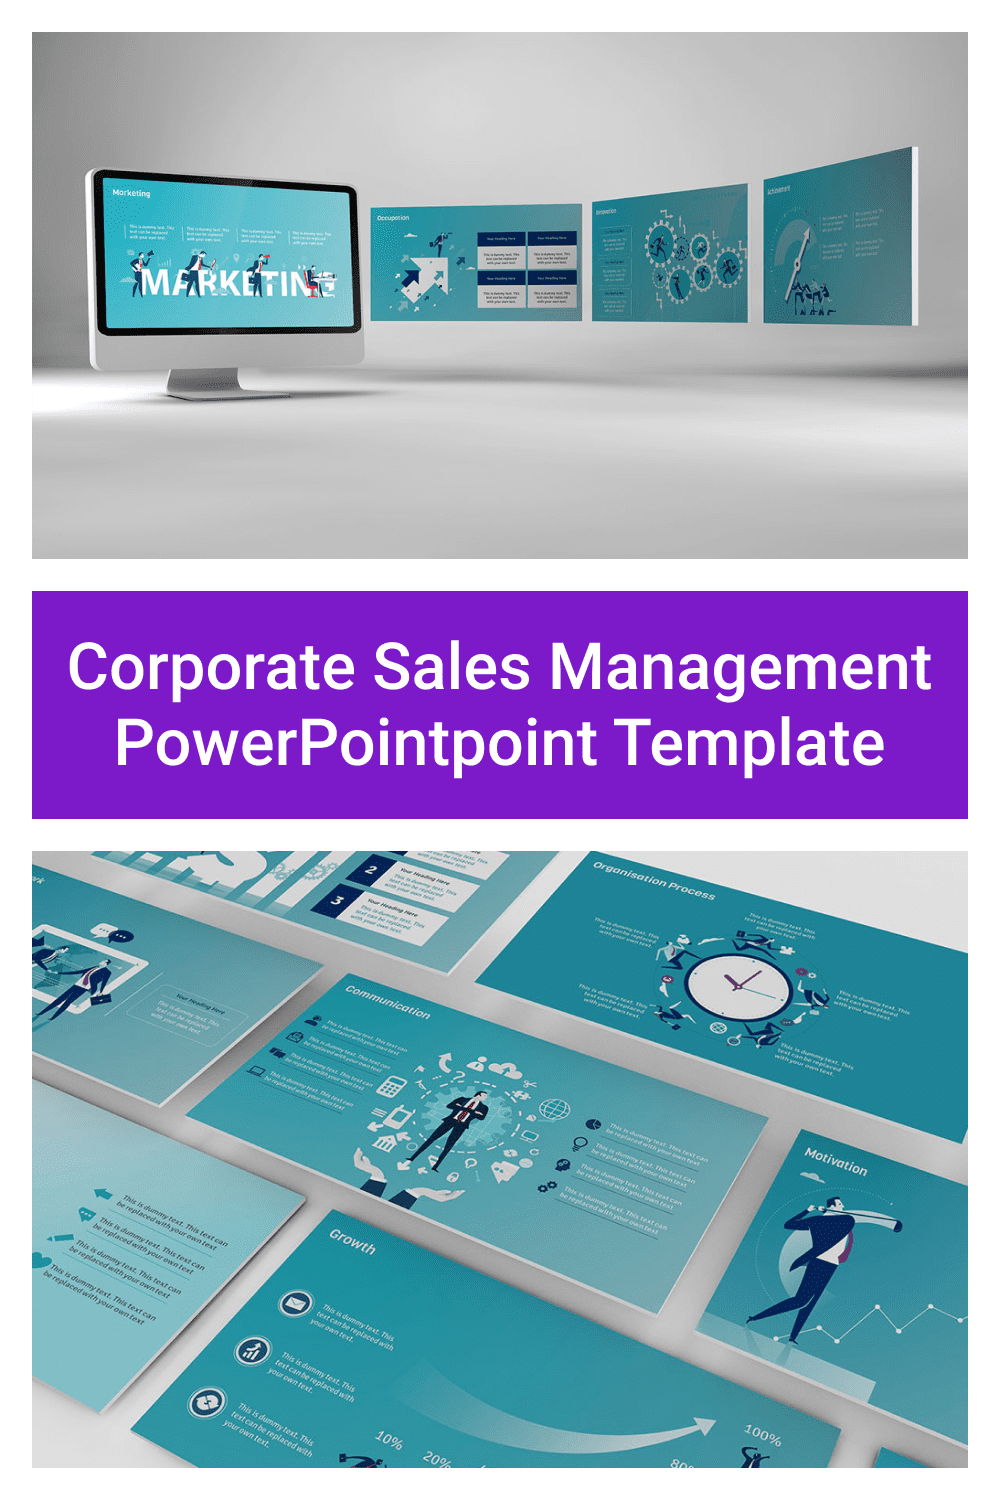 Corporate Sales Management PowerPoint Template.